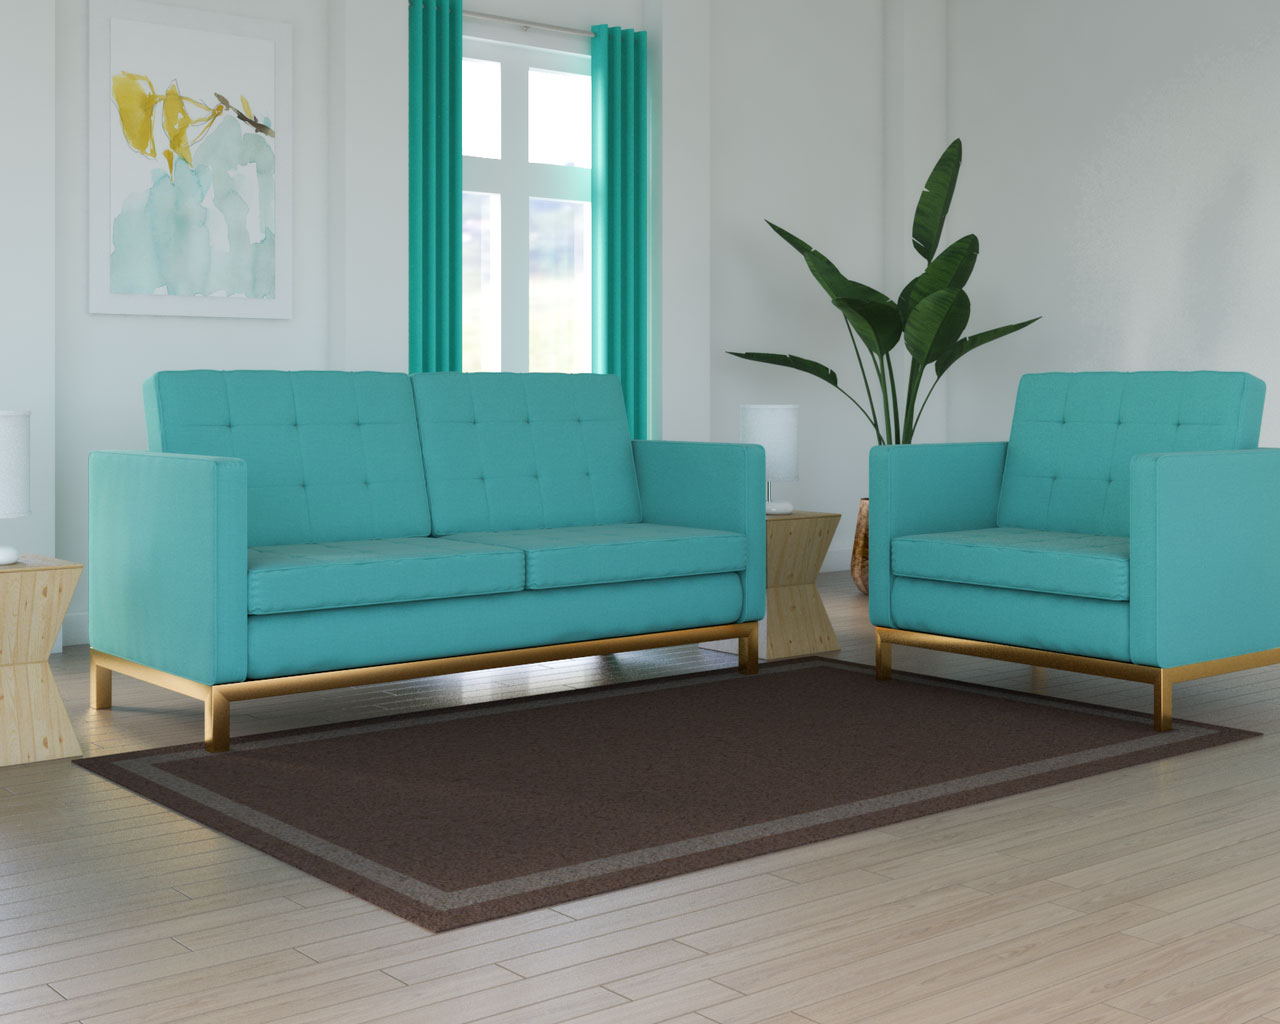 Brown rug with teal couch